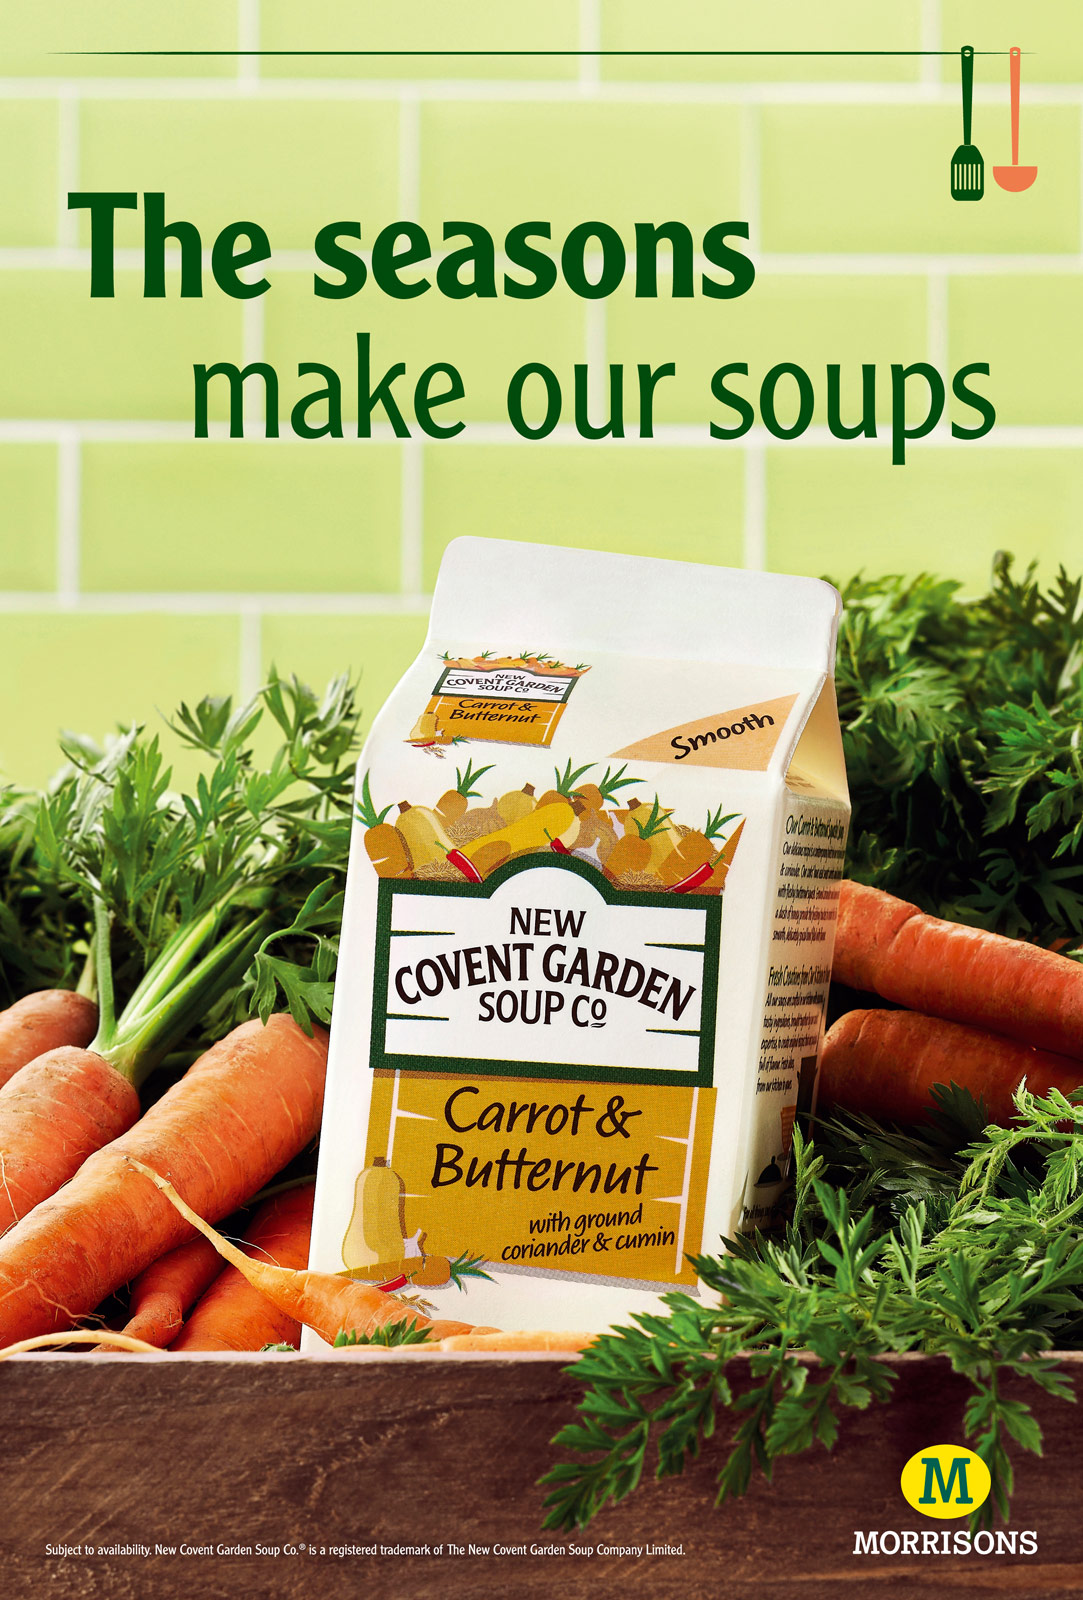 New Covent Garden Soup Co Morrisons advert